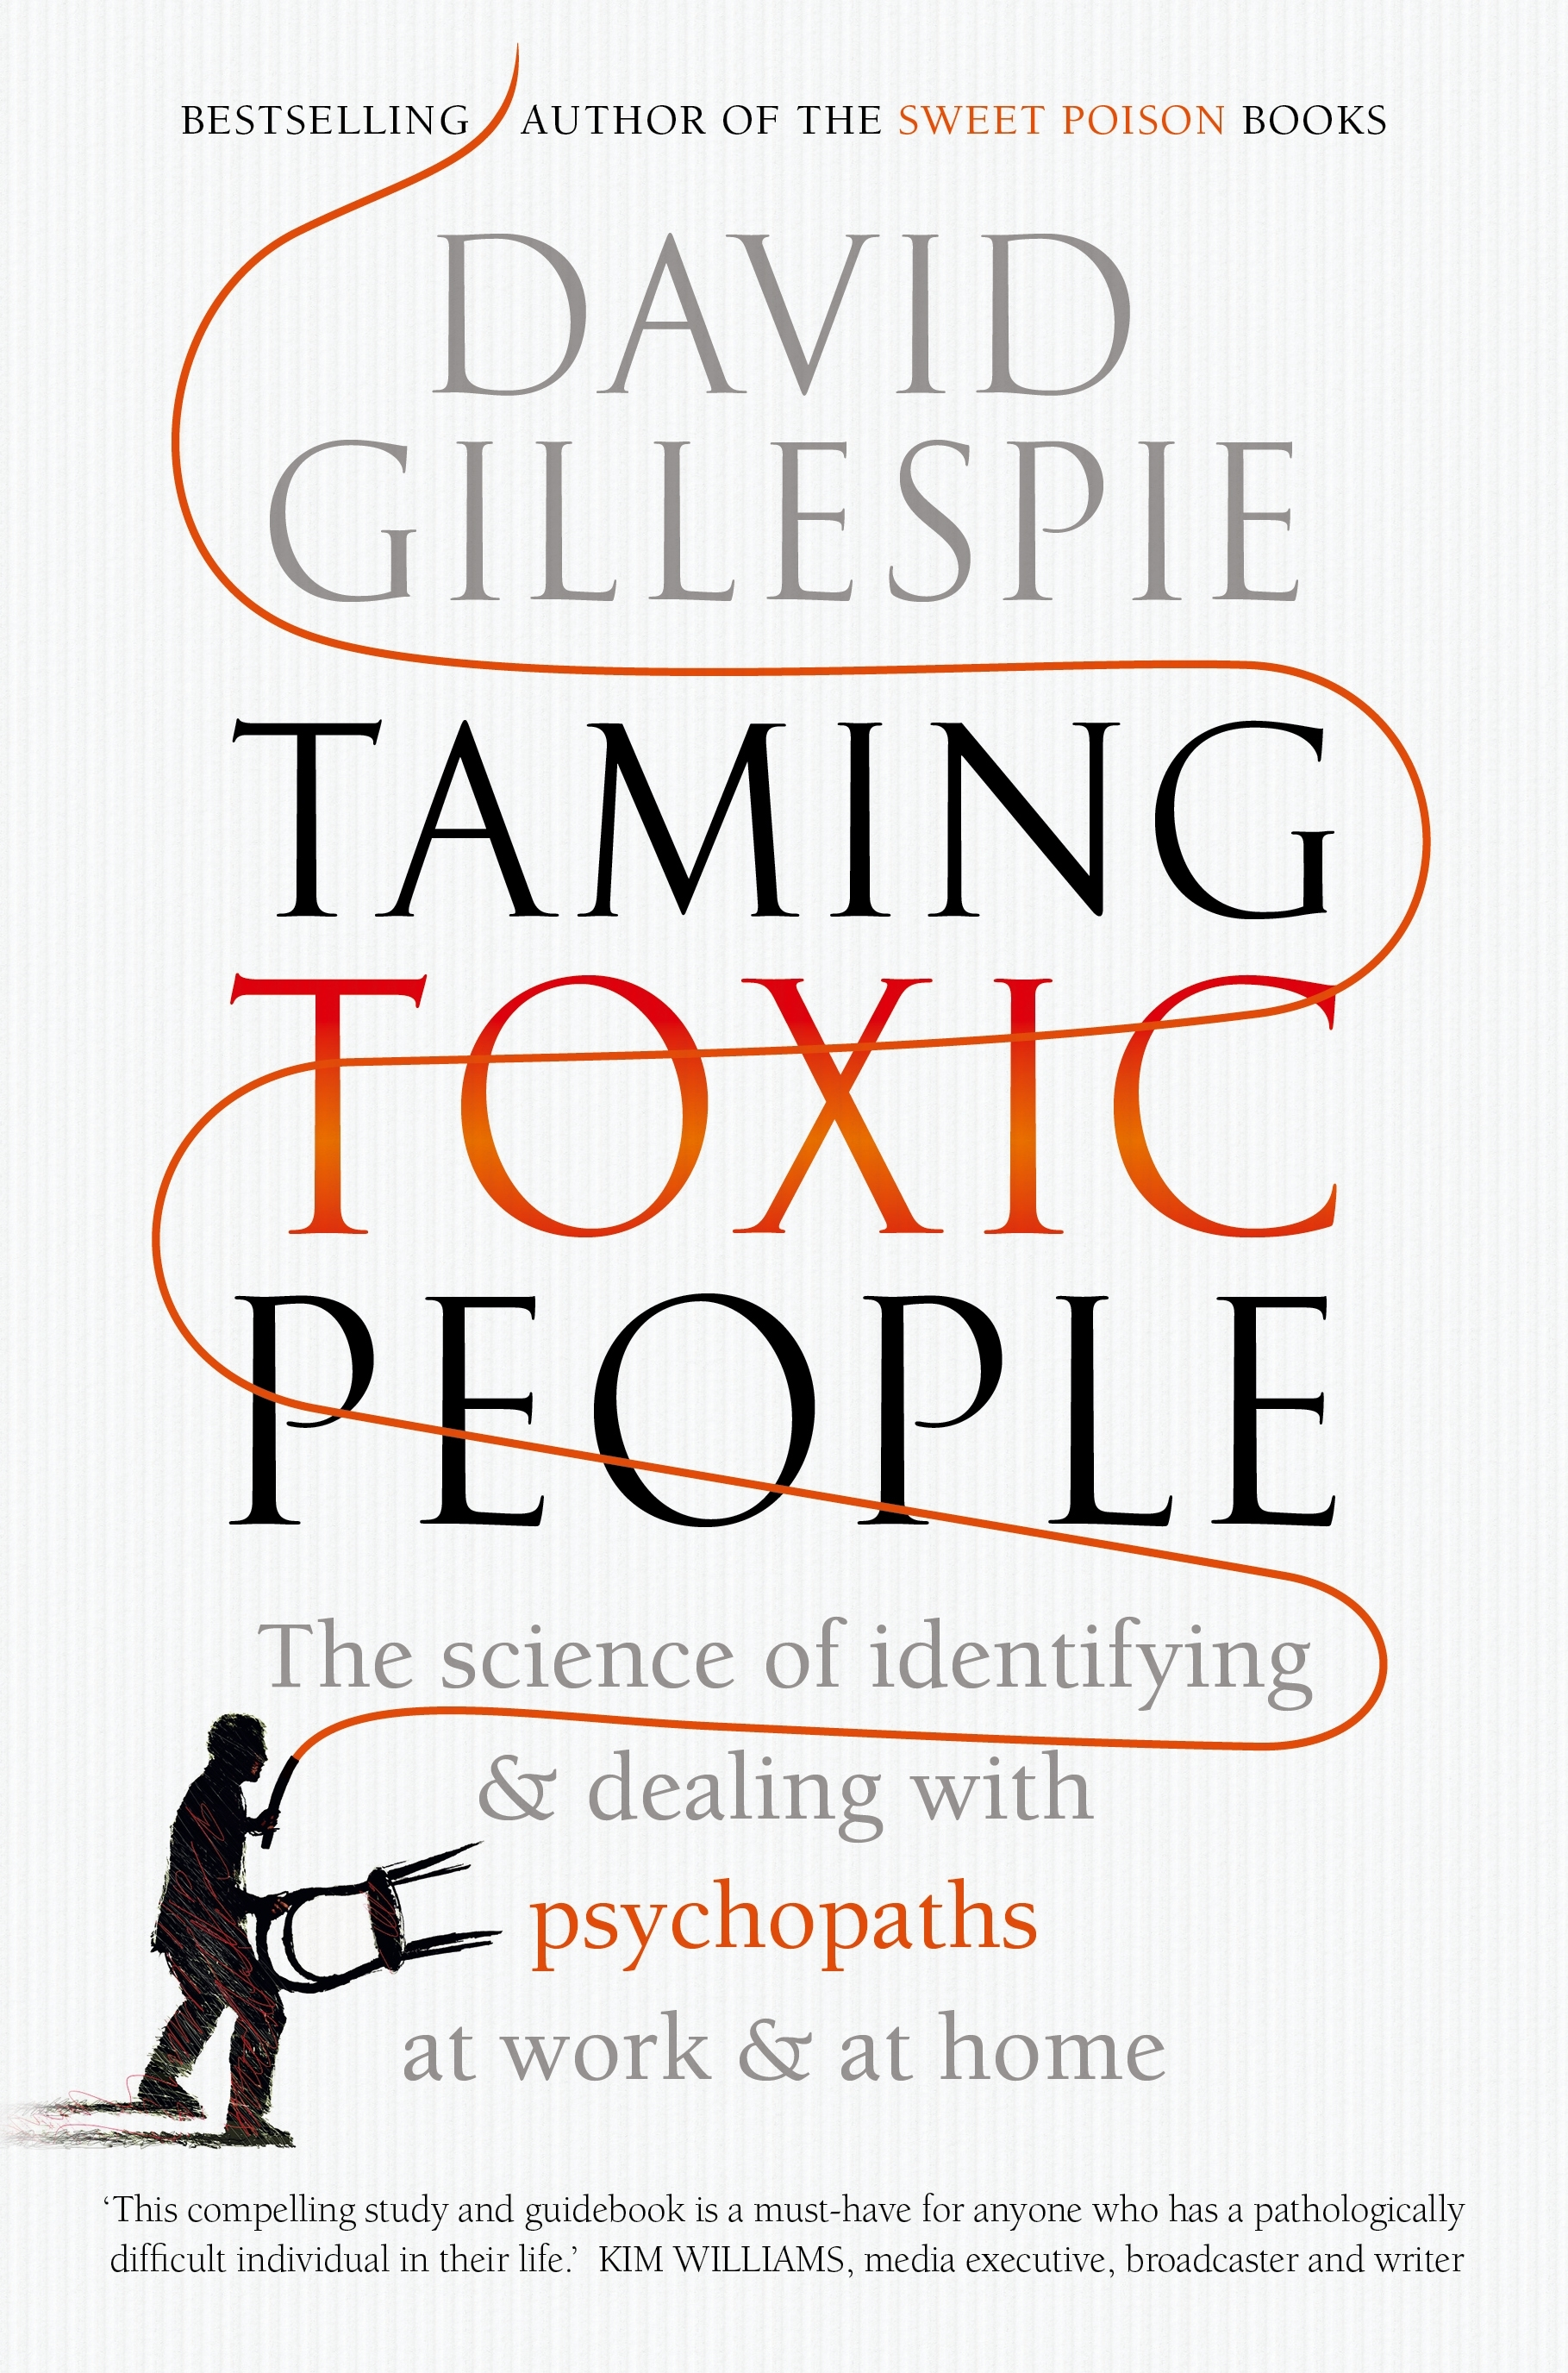 Taming Toxic People The Science of Identifying and Dealing with Psychopaths at Work